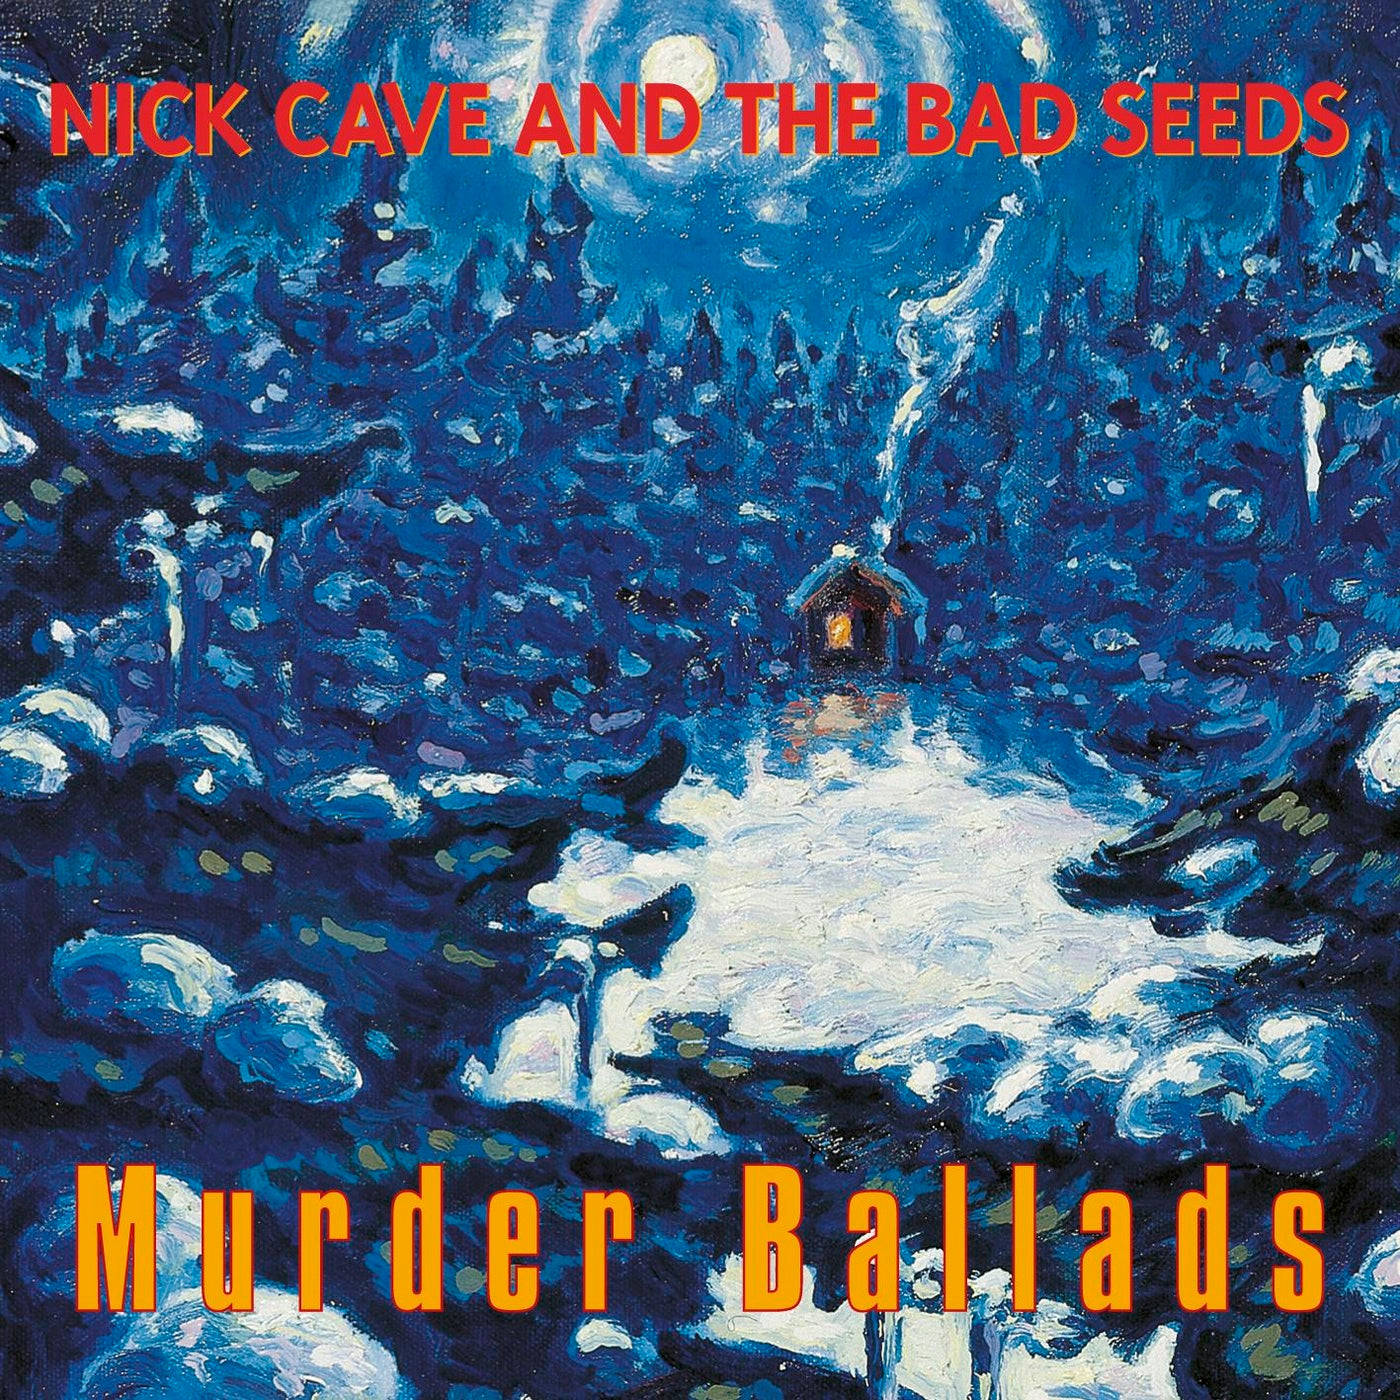 NICK CAVE AND THE BAD SEEDS - MURDER BALLADS - VINYL LP - Wah Wah Records